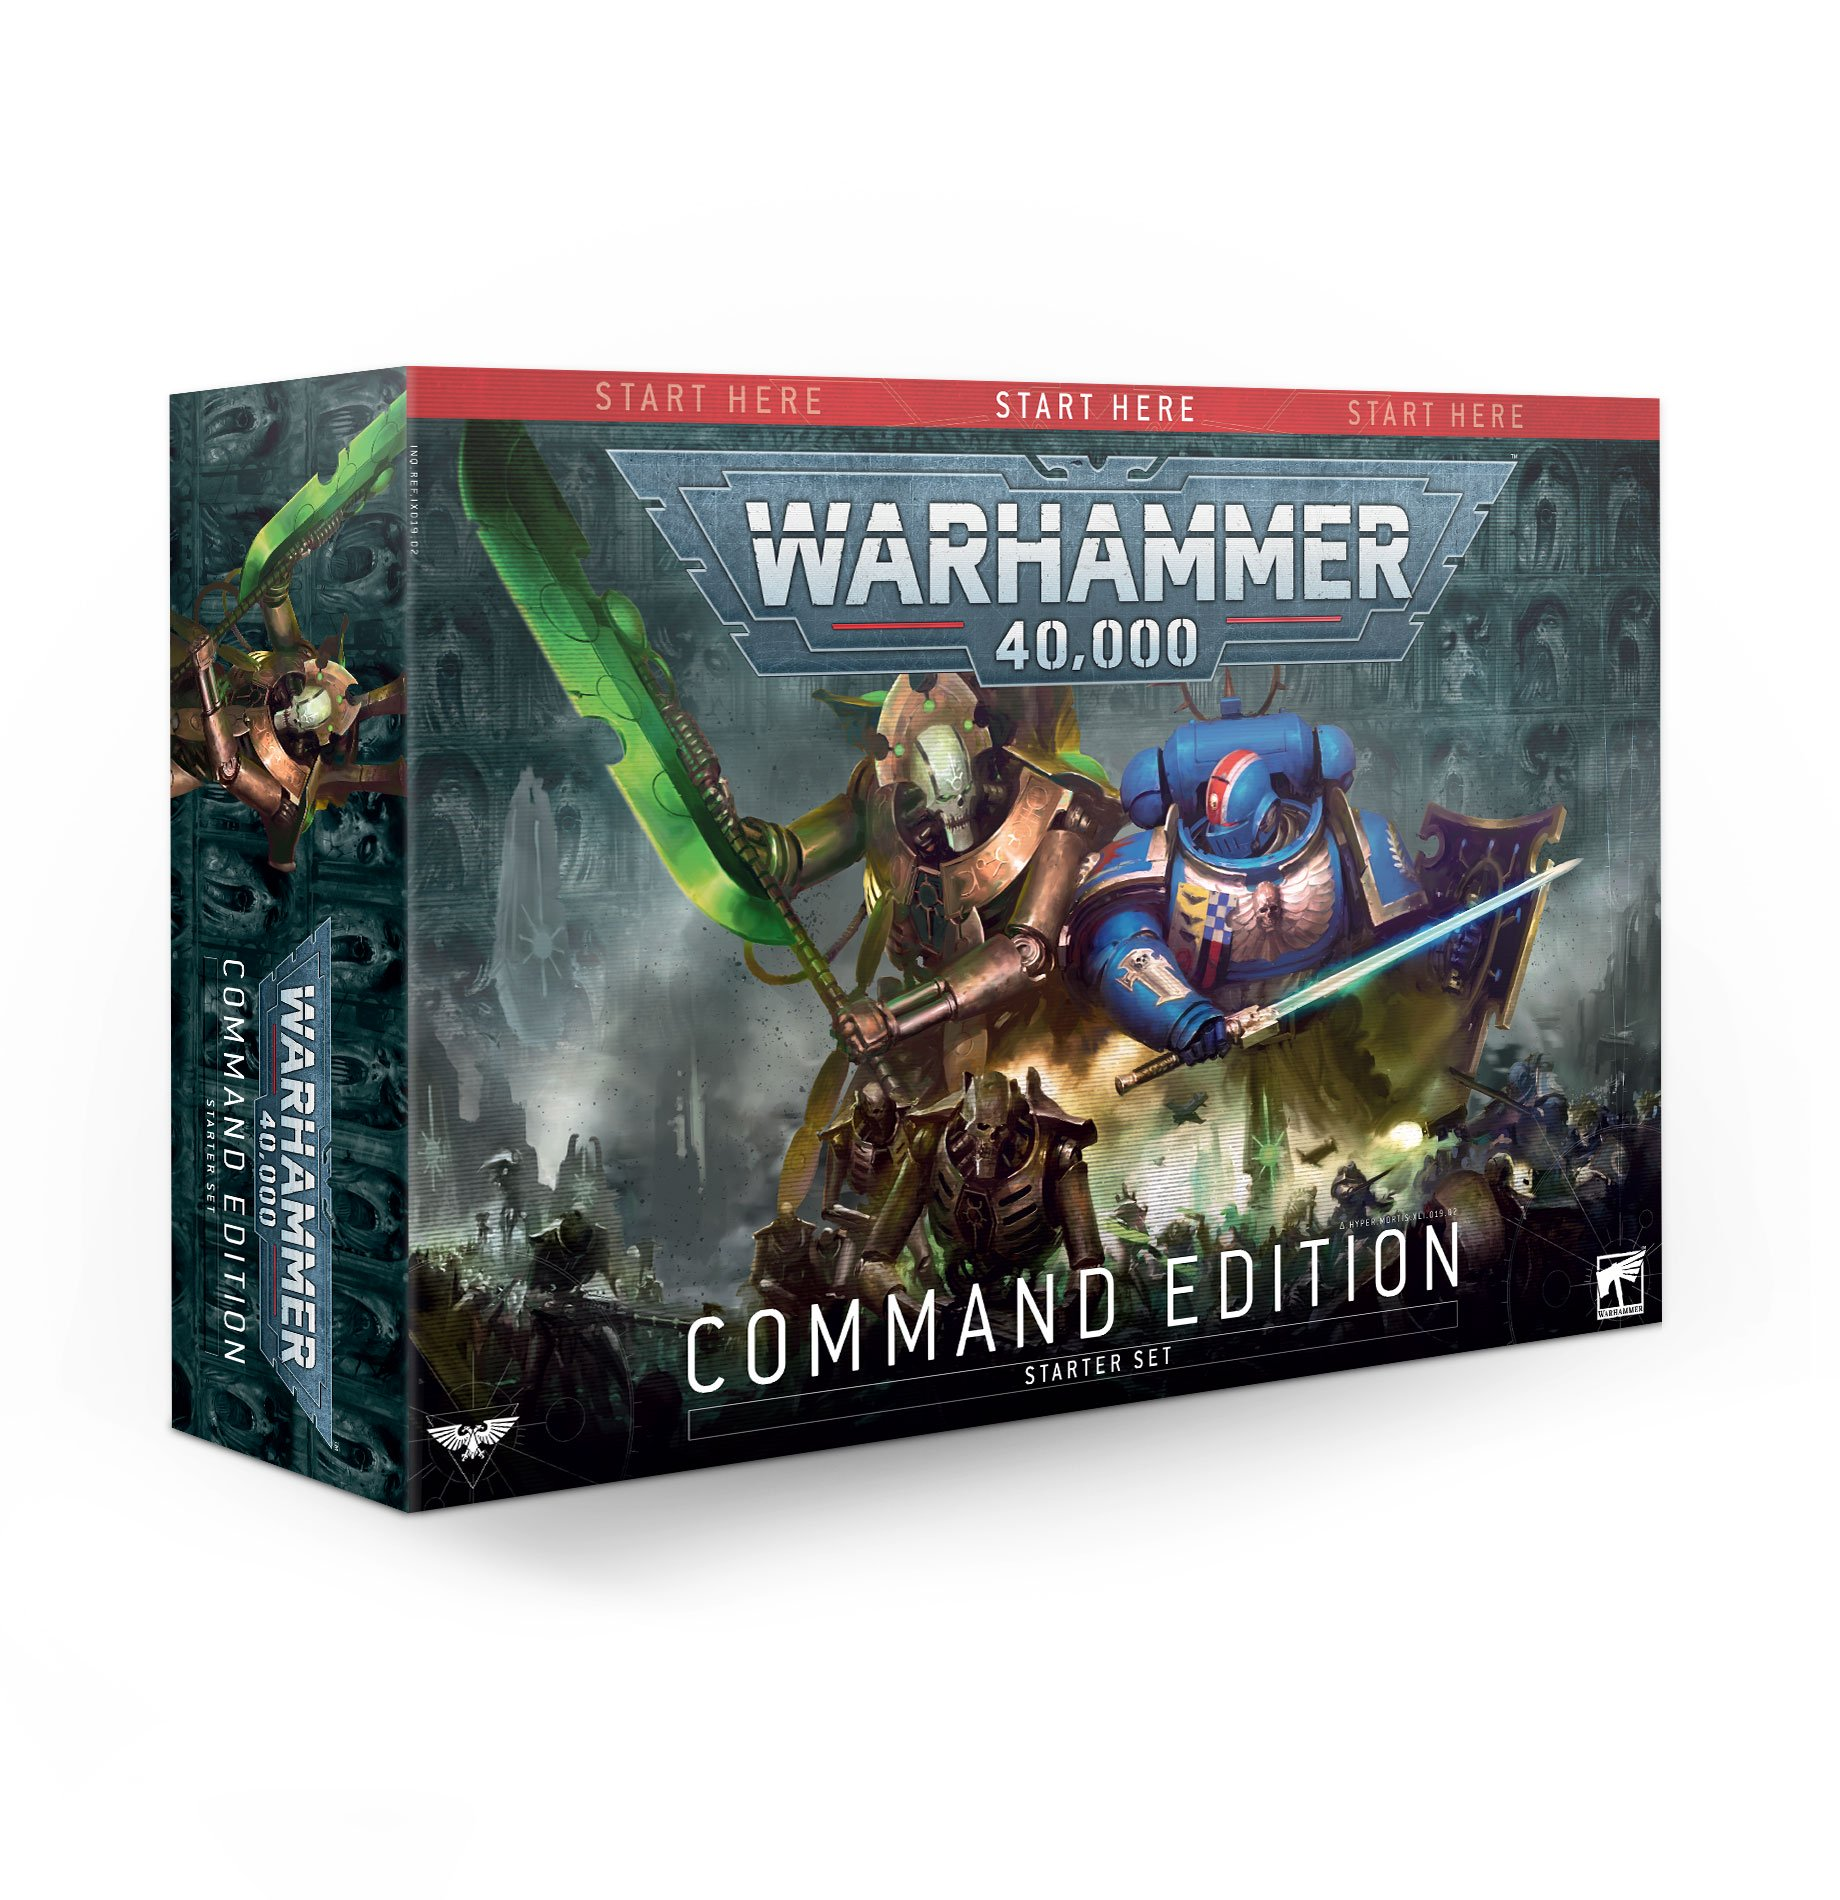 Command Edition, Warhammer 40,000